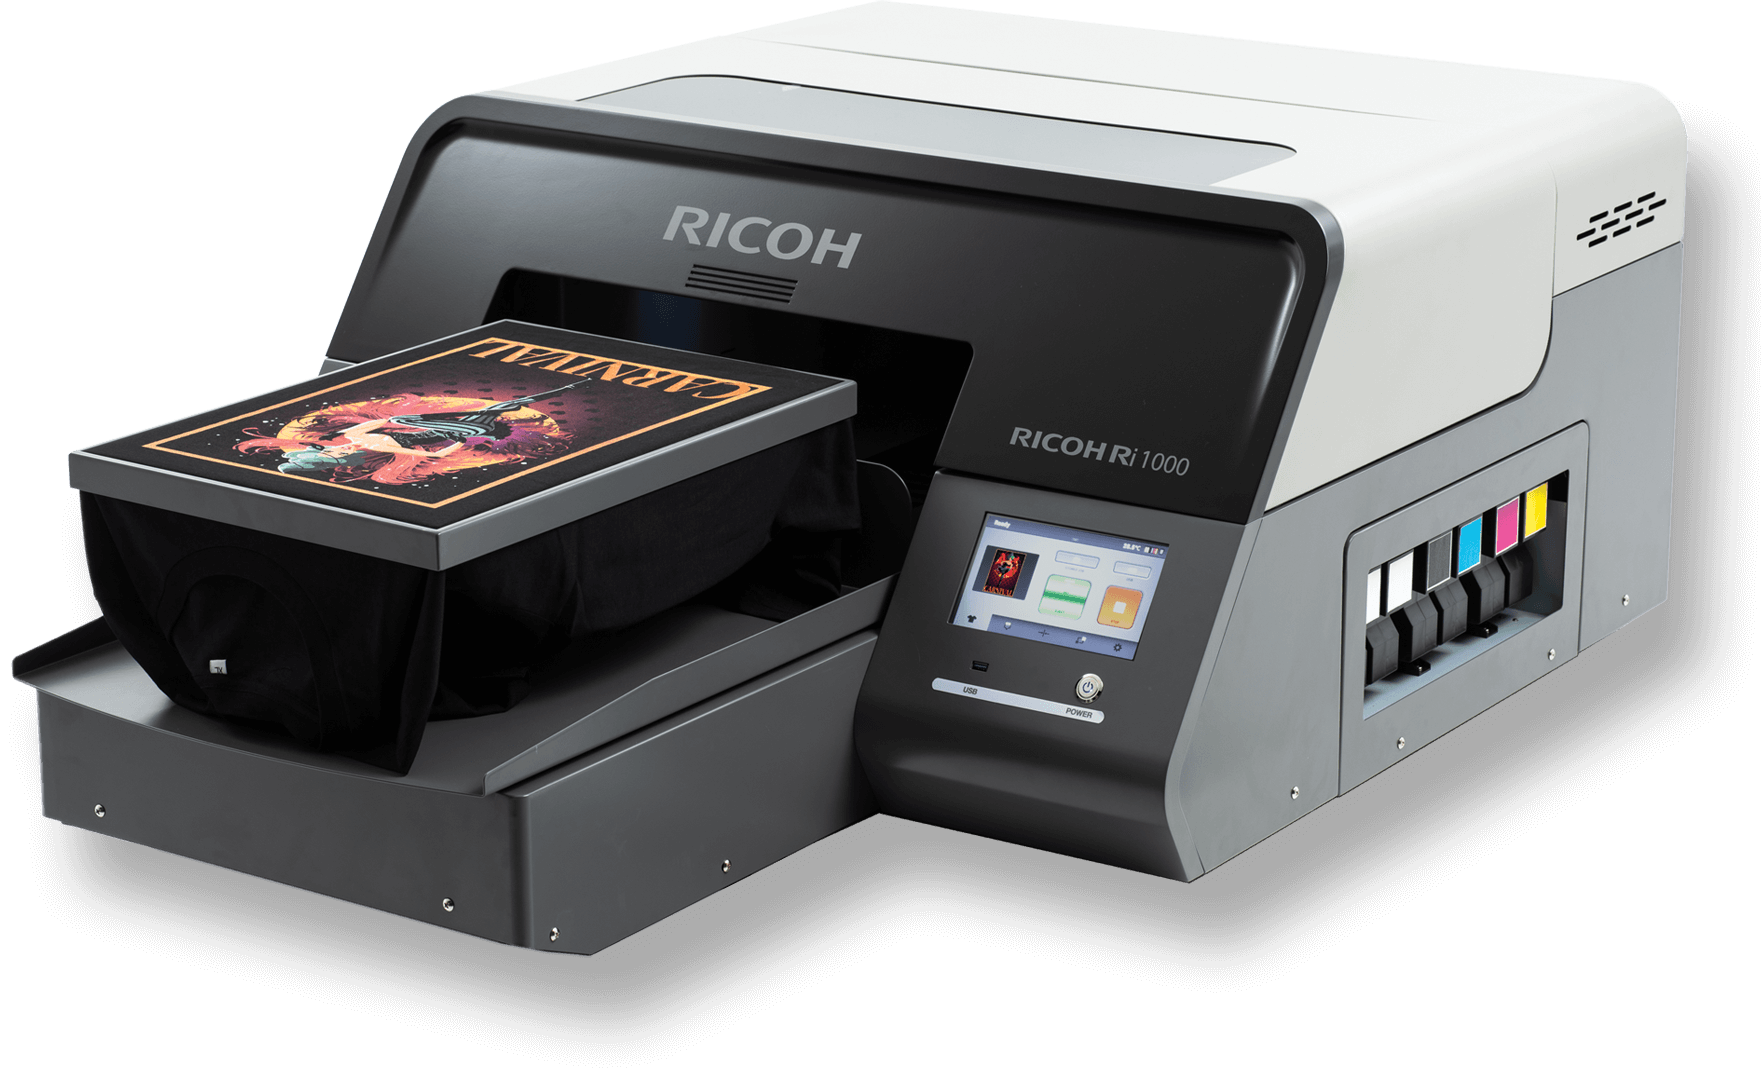 b47e95655 Introducing the Ricoh Ri 1000 - Printwear & Promotion